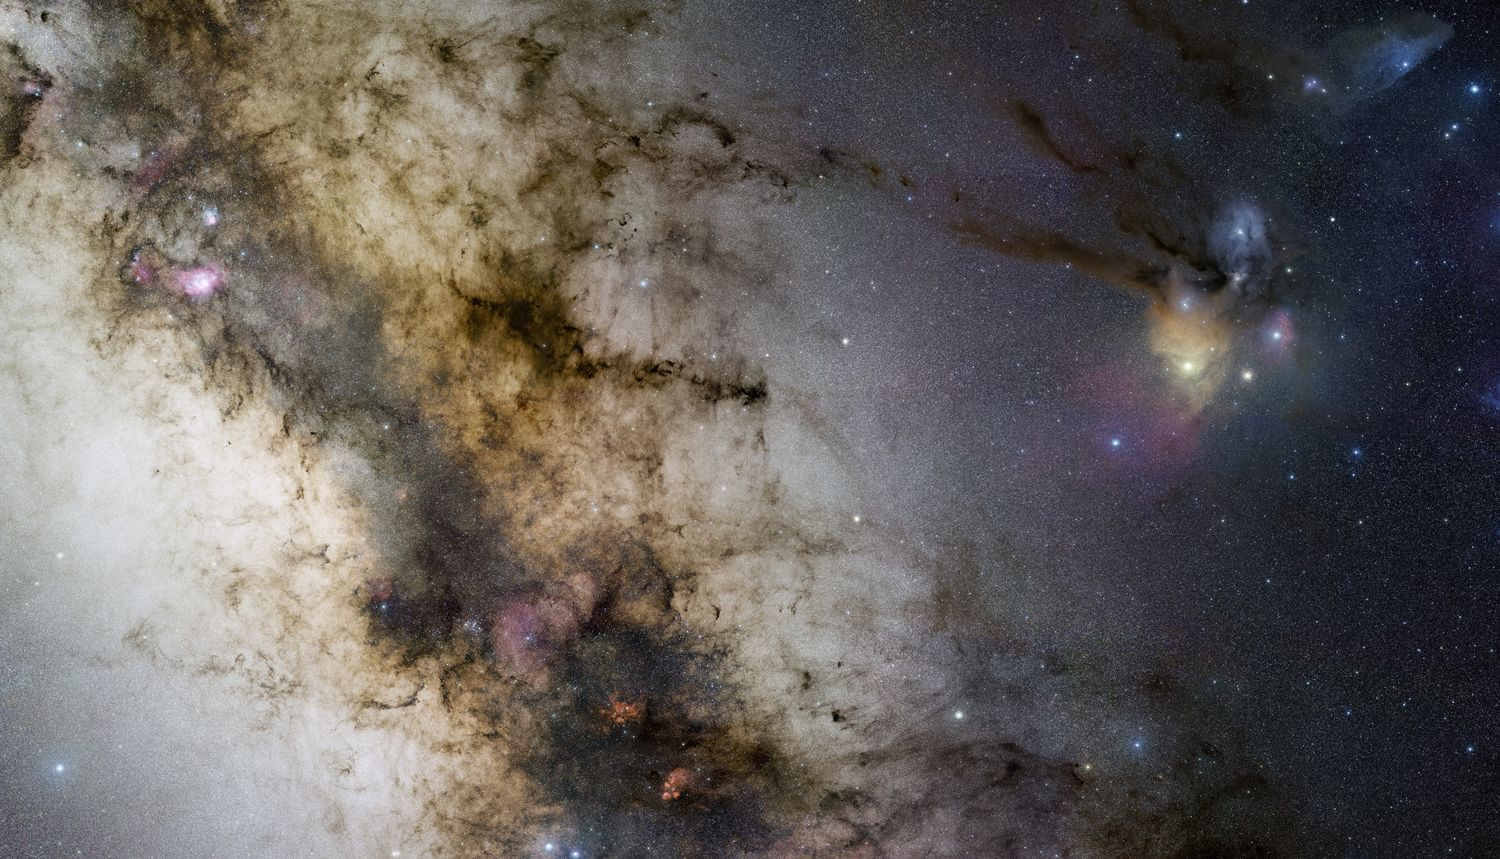 The central Milky Way region is captured in this expansive gigapixel mosaic of 1200 individual images and 200 hours of exposure time. The images were collected over 29 nights with a small telescope under the clear, dark skies of the ESO Paranal Observatory in Chile. Starting on the left, look for the Lagoon and Trifid nebulae, the Cat's Paw, the Pipe dark nebula, and the colorful clouds of Rho Ophiuchi and Antares (right).